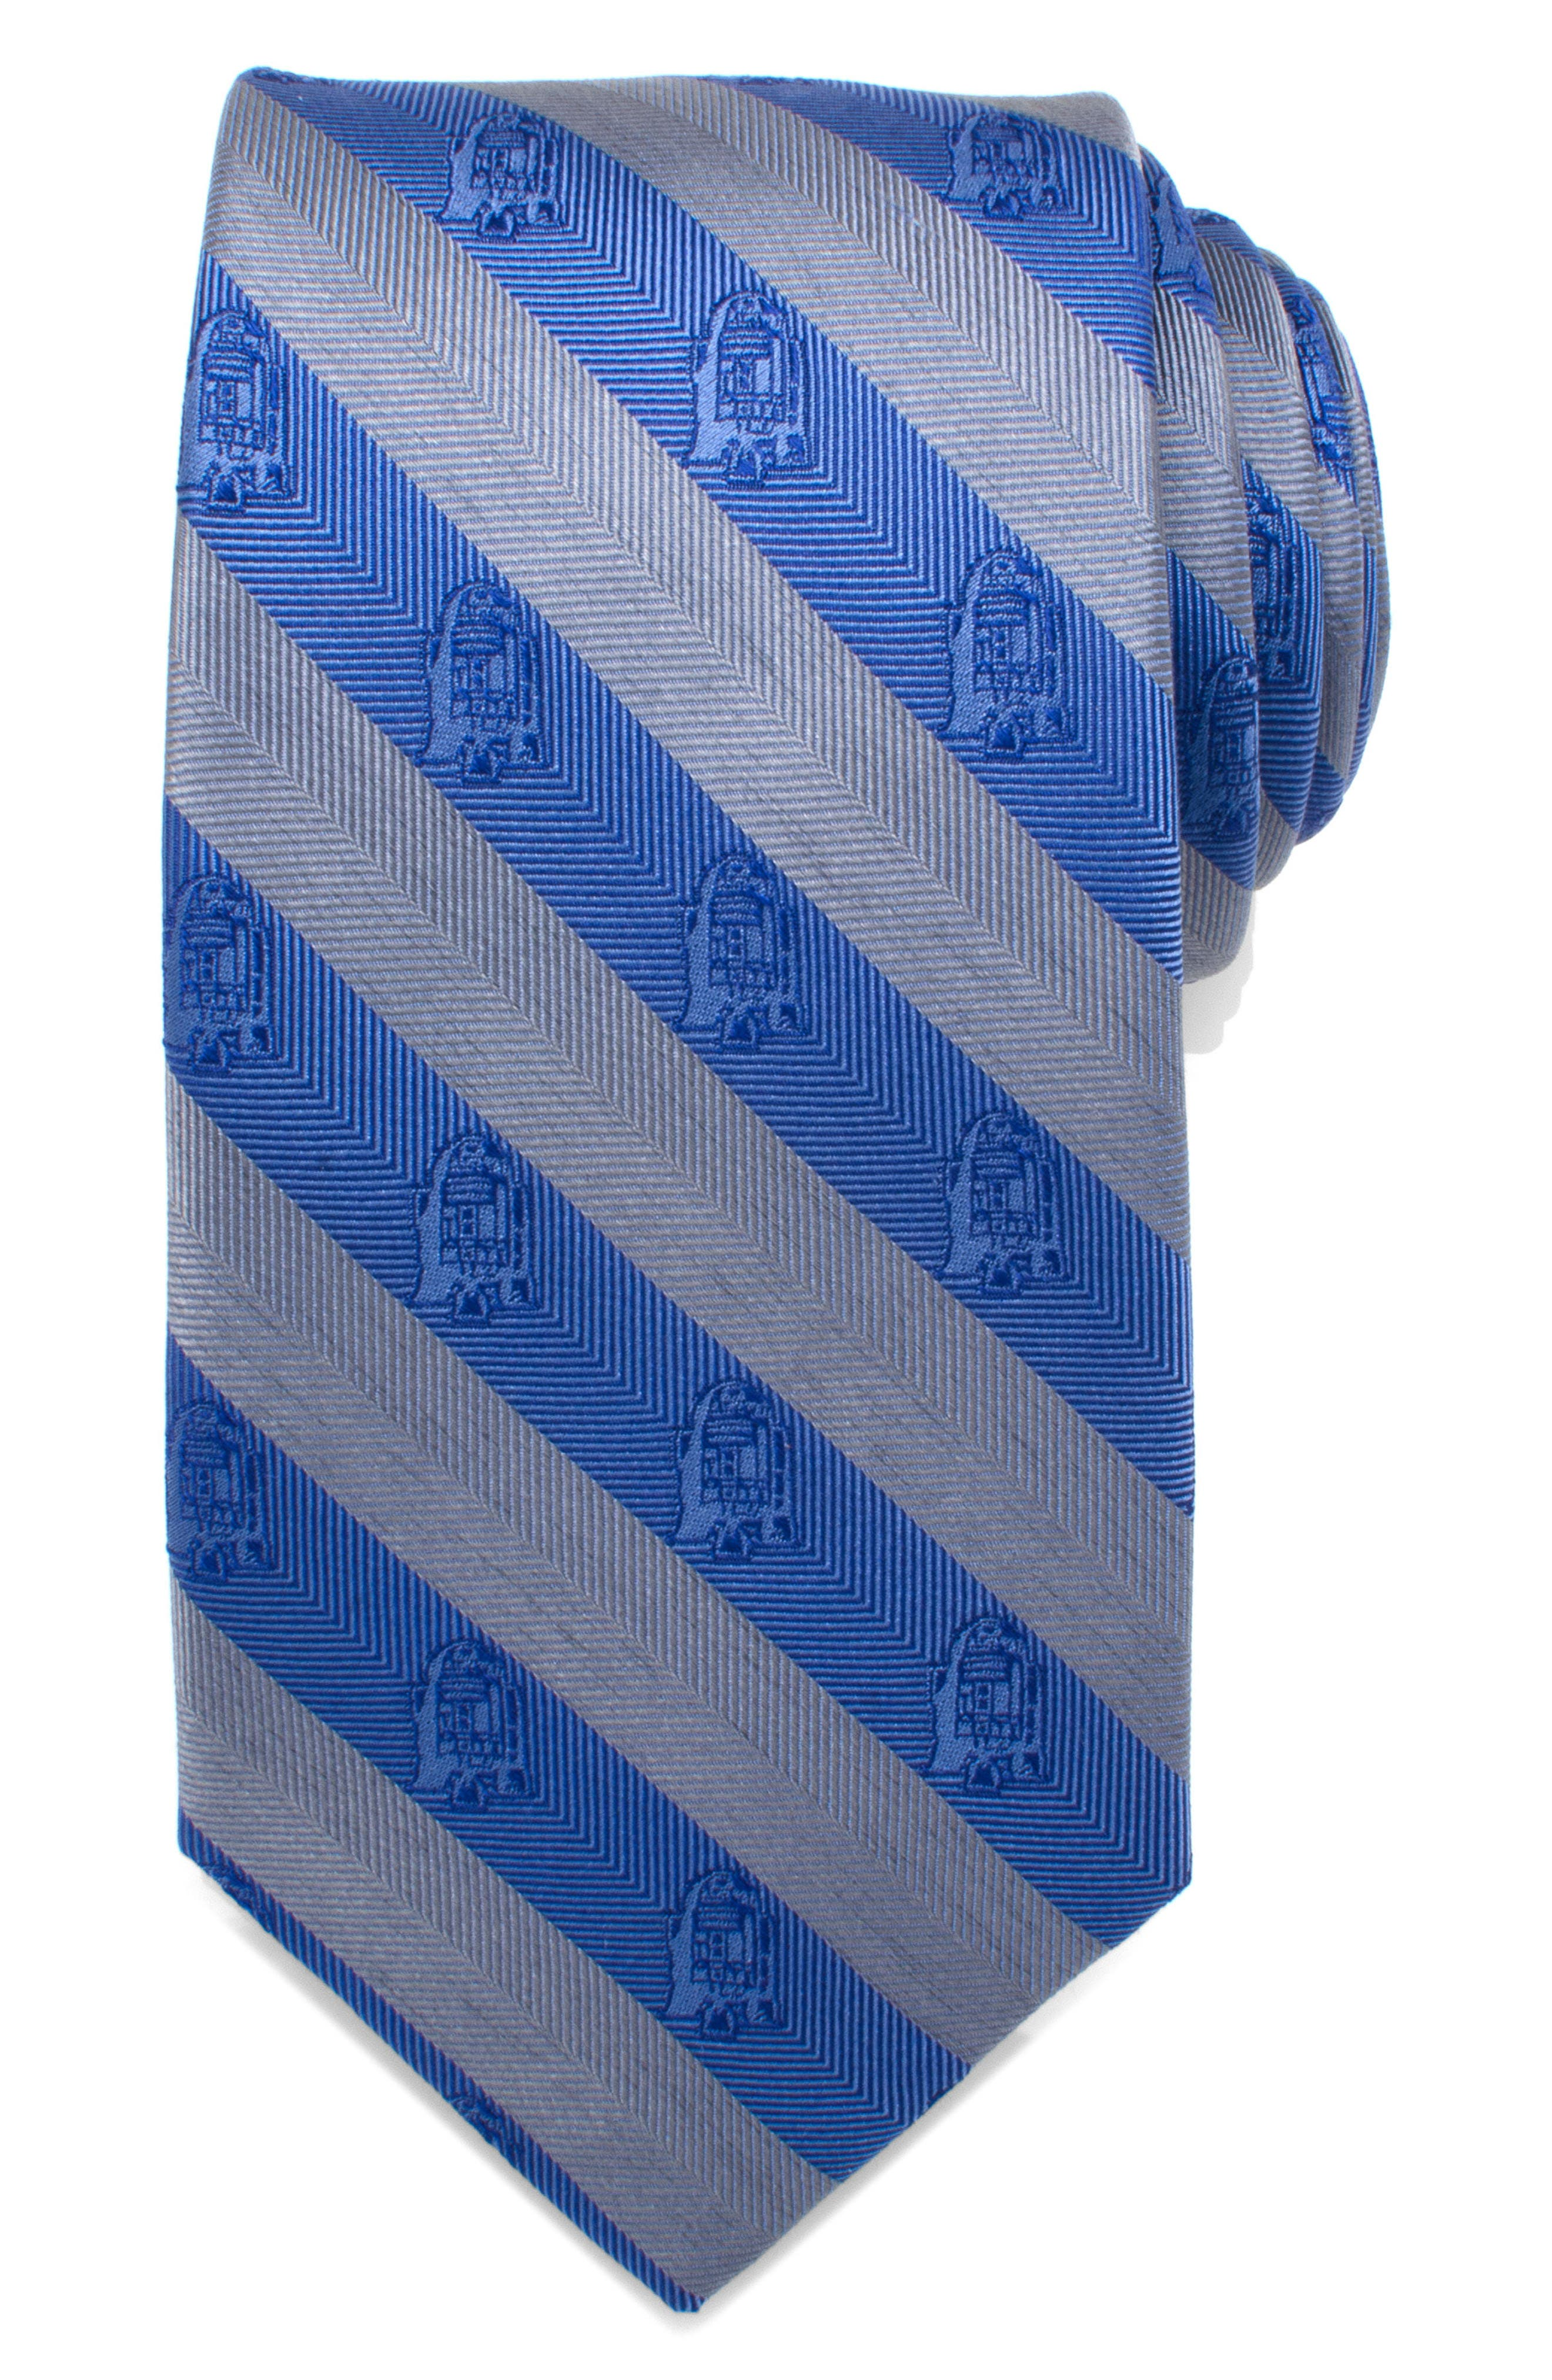 Star Wars<sup>™</sup> R2D2 Silk Tie,                         Main,                         color, Blue